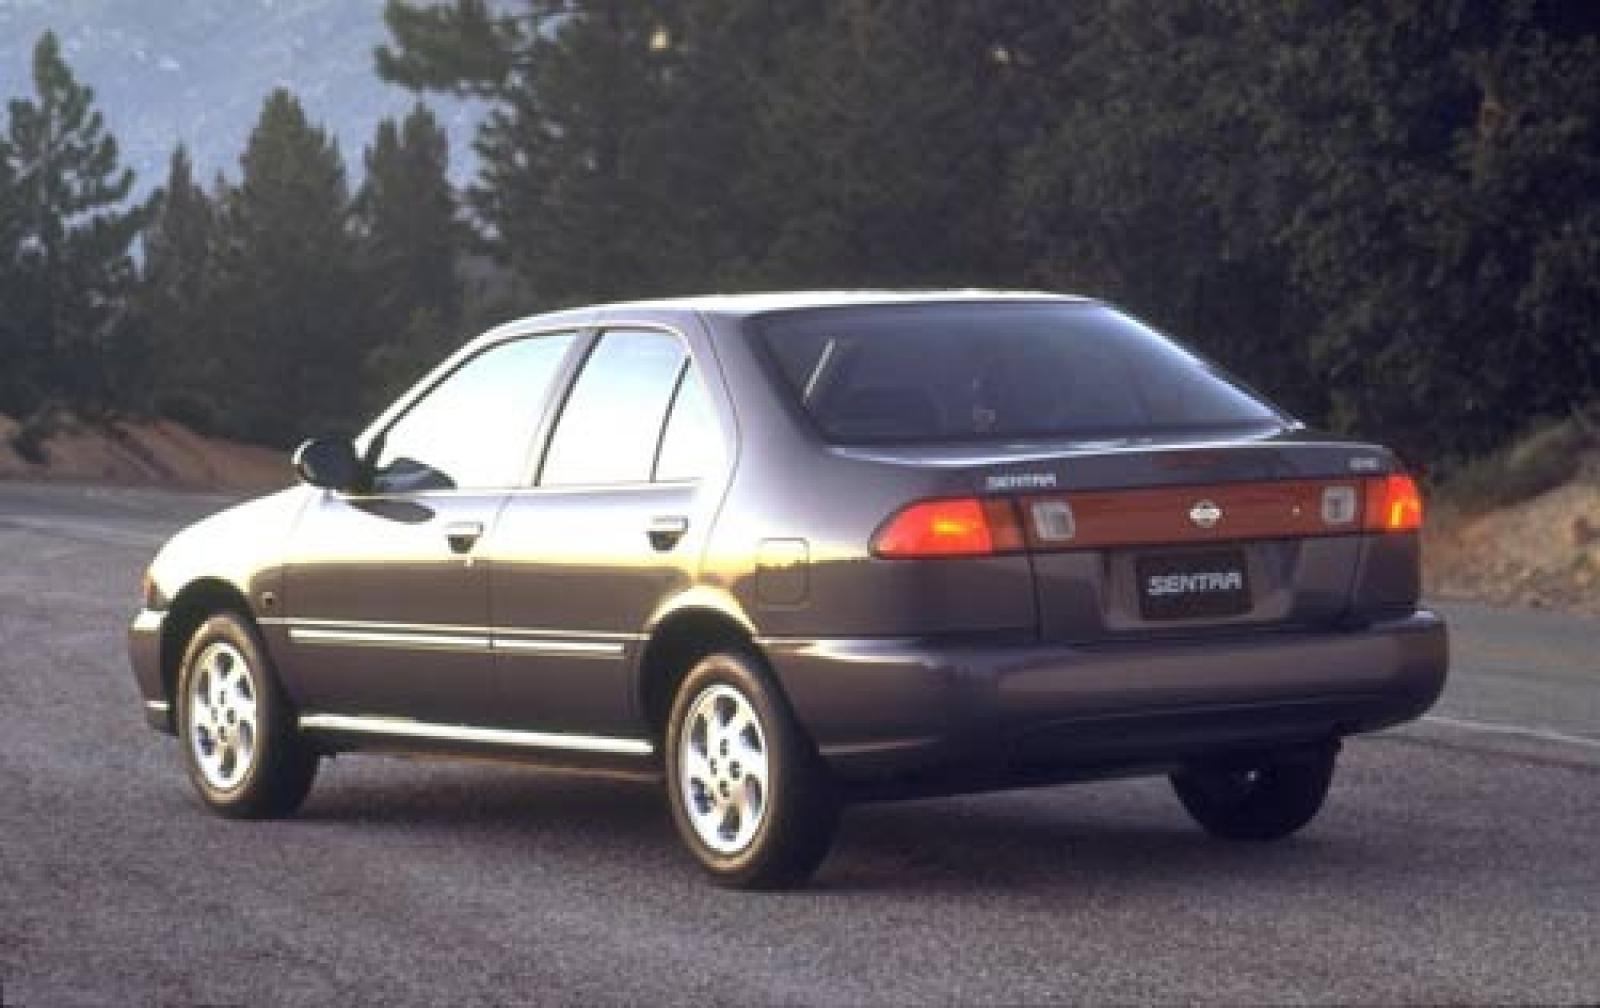 1999 Nissan Sentra - Information and photos - ZombieDrive